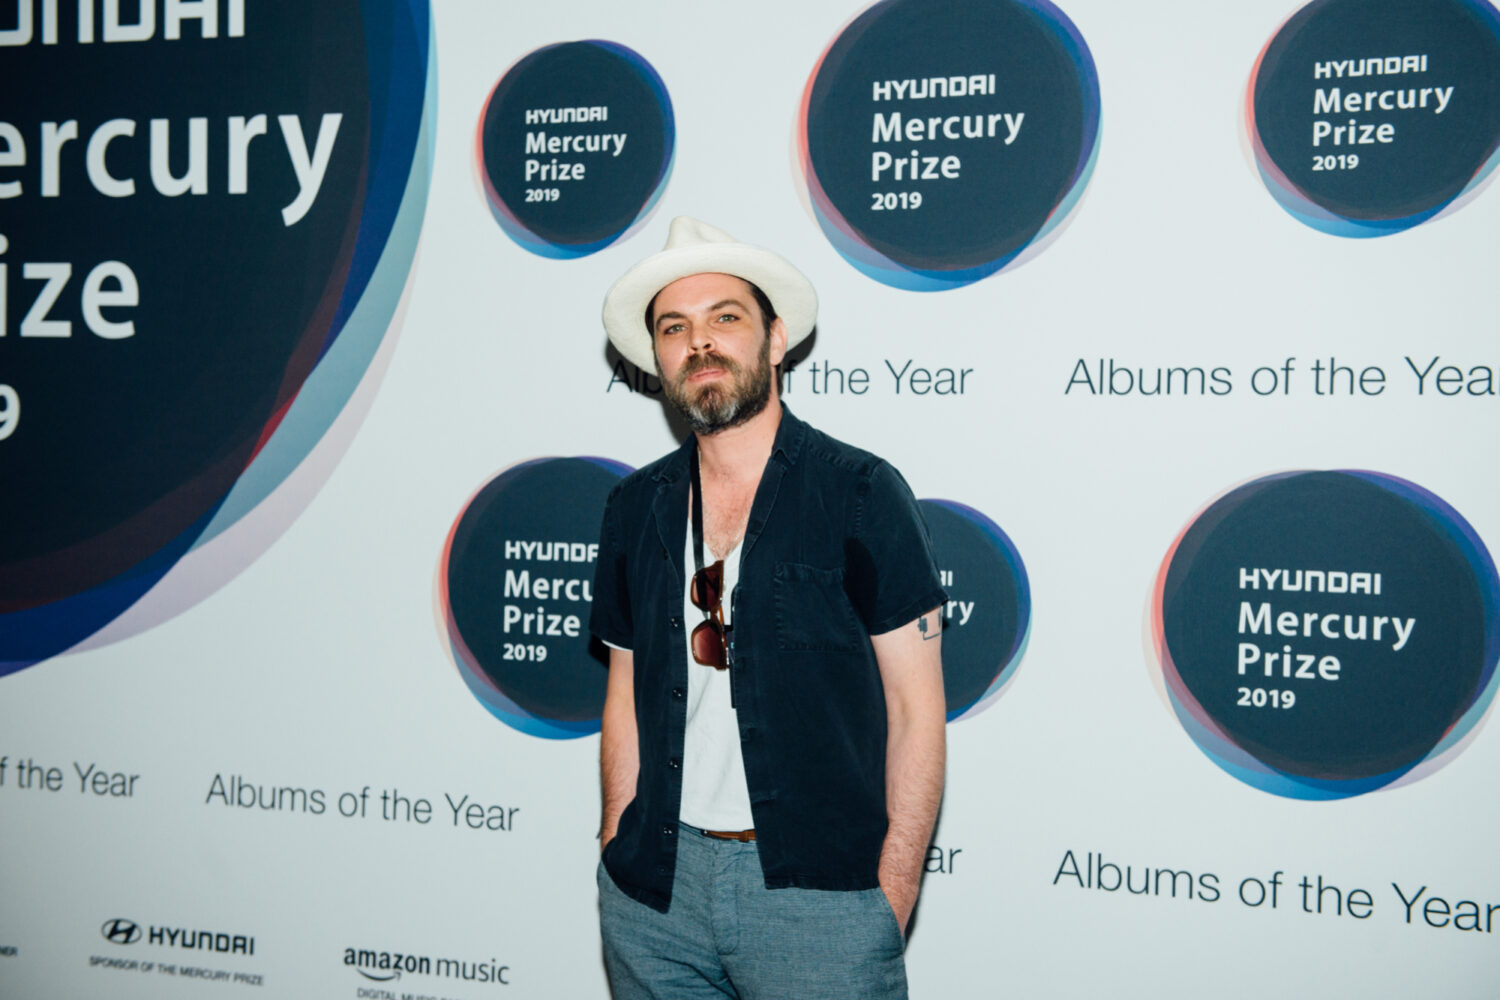 """""""I'm fully expecting there to be a bit of fisticuffs"""" - Gaz Coombes talks judging the 2019 Hyundai Mercury Prize"""